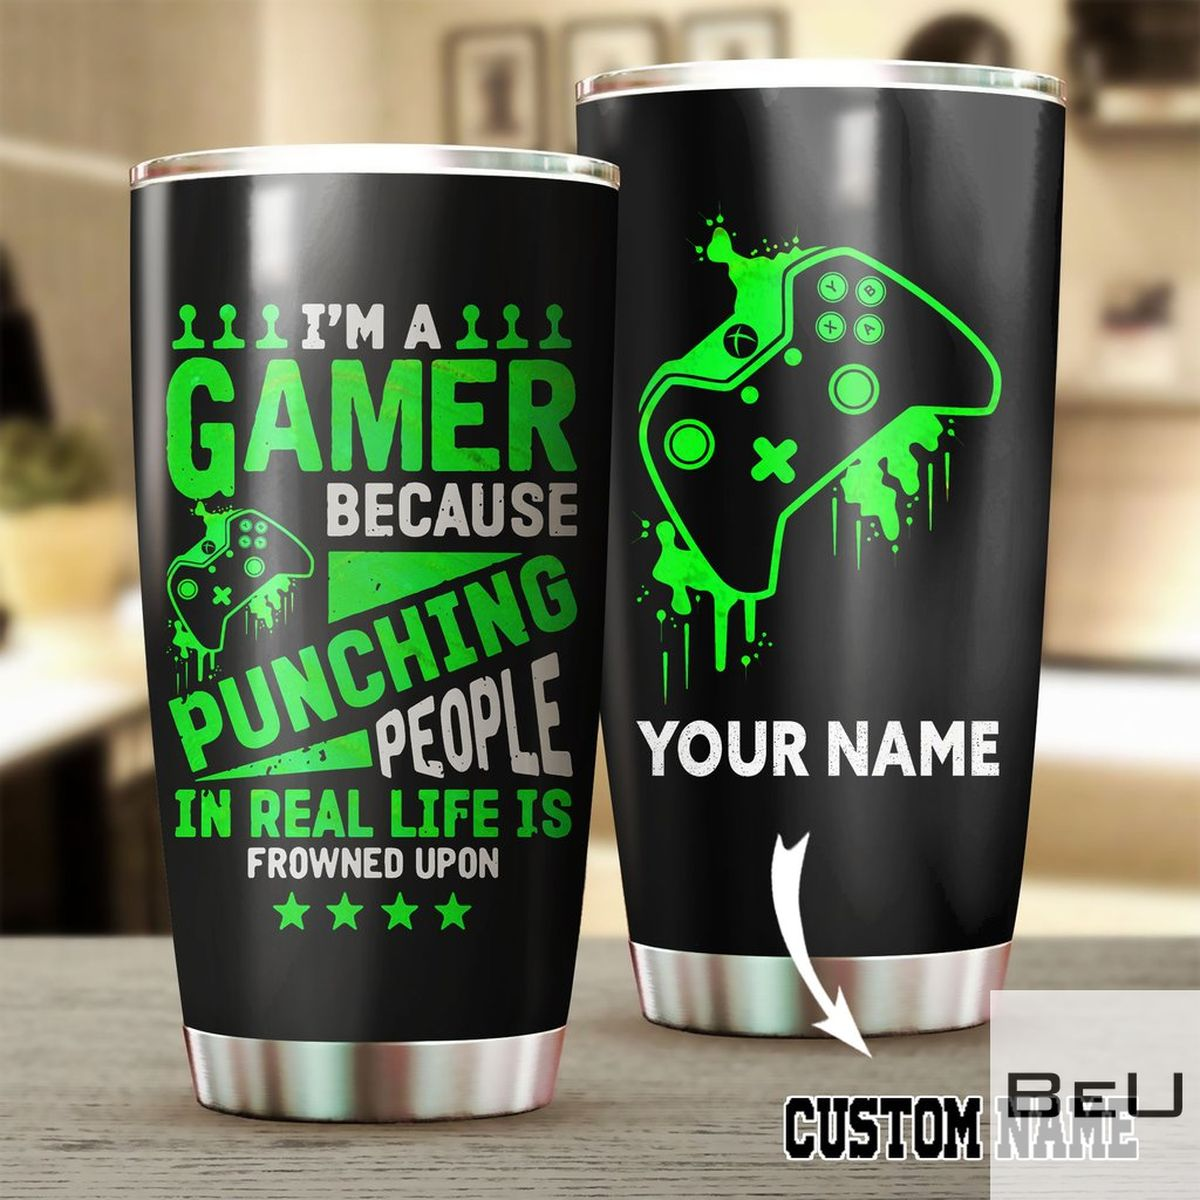 Personalized I'm A Gamer Because Punching People In Real Life Is Frowned Upon Tumbler